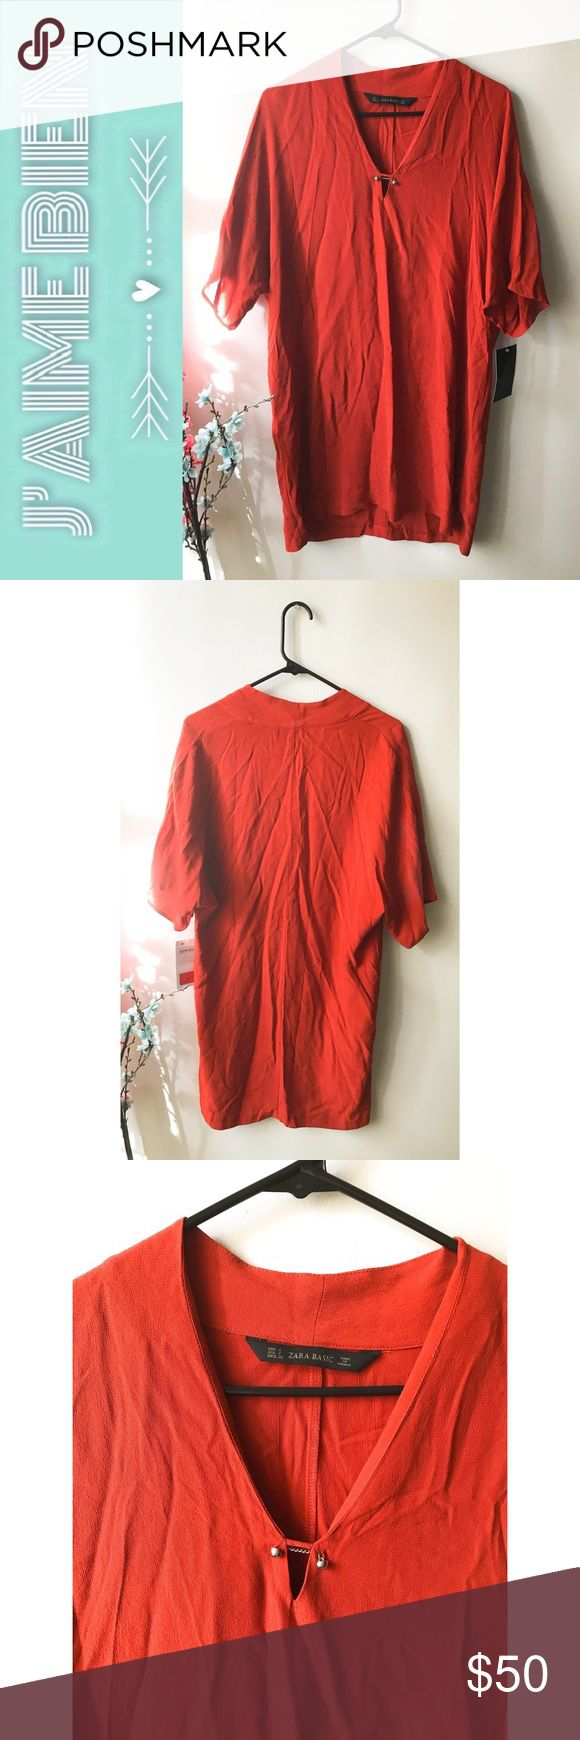 🍊NWT Zara Basic Burnt Orange Shirt Dress This basic shirt dress is the perfect wardrobe staple! Pair it with a belt, wide brim hat, and turquoise jewelry for a boho look! This item is in BRAND NEW, unworn condition with original tags still attached. The tag lists this item as a size small, but the fit is oversized and may require belting or cinching at the waist.✨  -Dress: 100% viscose Zara Dresses Mini